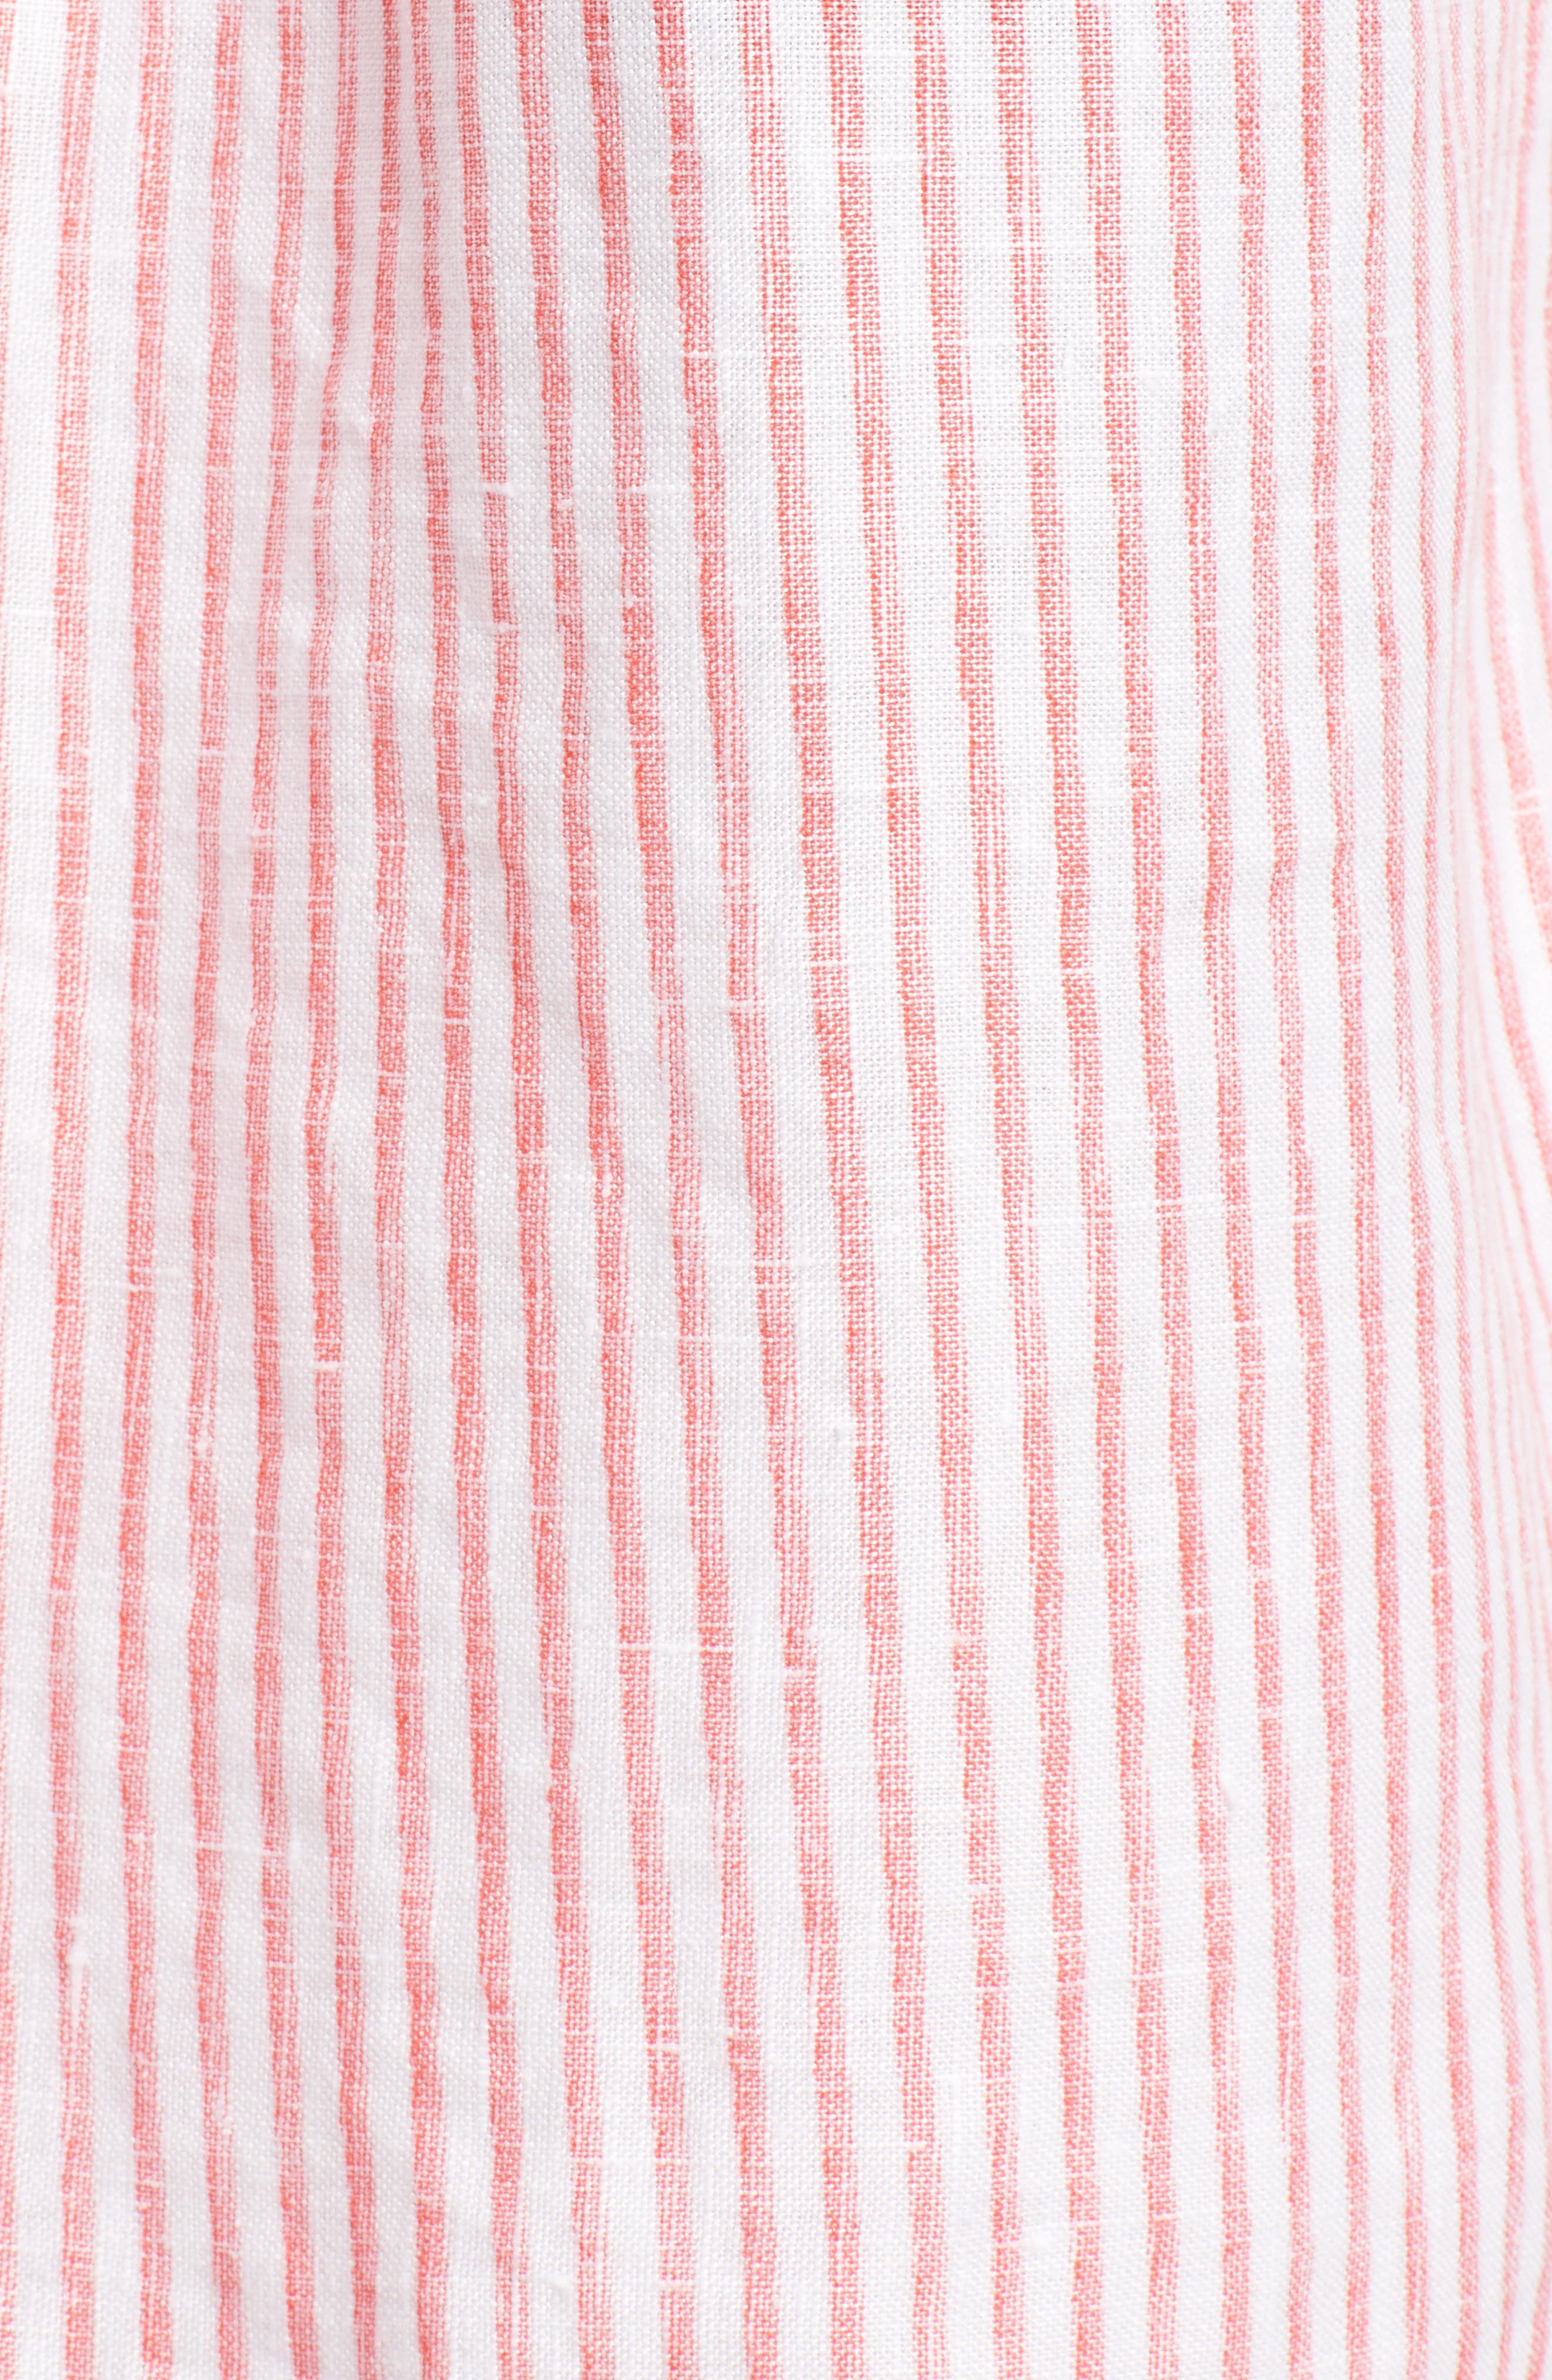 Crystalline Waters Long Sleeve Shirt,                             Alternate thumbnail 5, color,                             DUBARRY CORAL